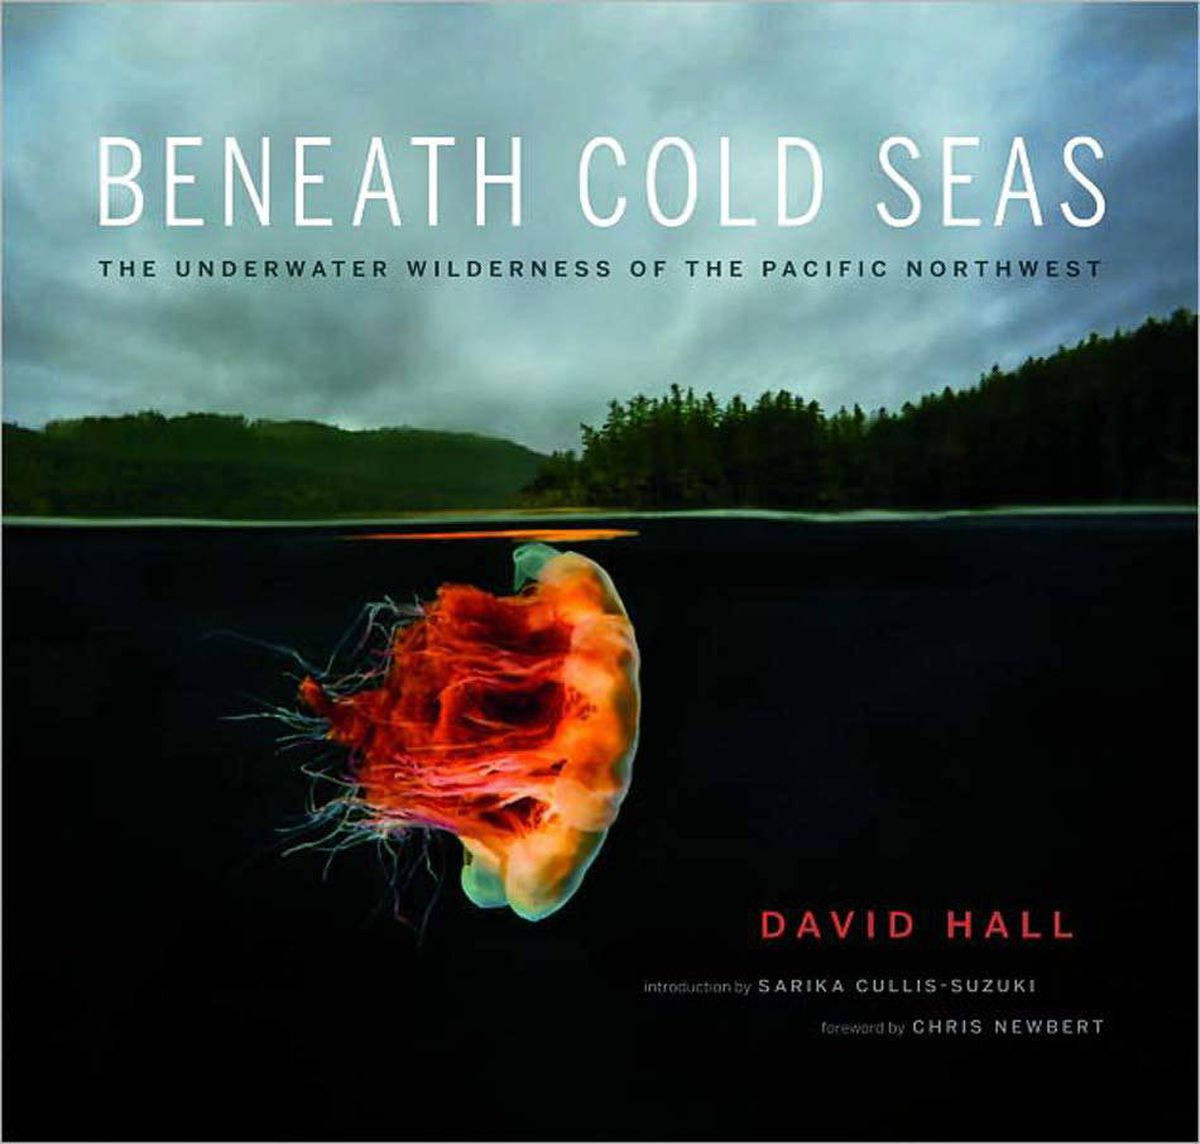 """BENEATH COLD SEAS The Underwater Wilderness of the Pacific Northwest By David Hall (GreyStone, 160 pages, $45) You won't find SpongeBob SquarePants here, but you will find great photos of critters and phenomena from the deepest deeps of the Pacific Northwest. There isn't much light down there, and that makes these photos (and the colours!) of kelp forests and """"scalyhead sculpin"""" that much more remarkable."""